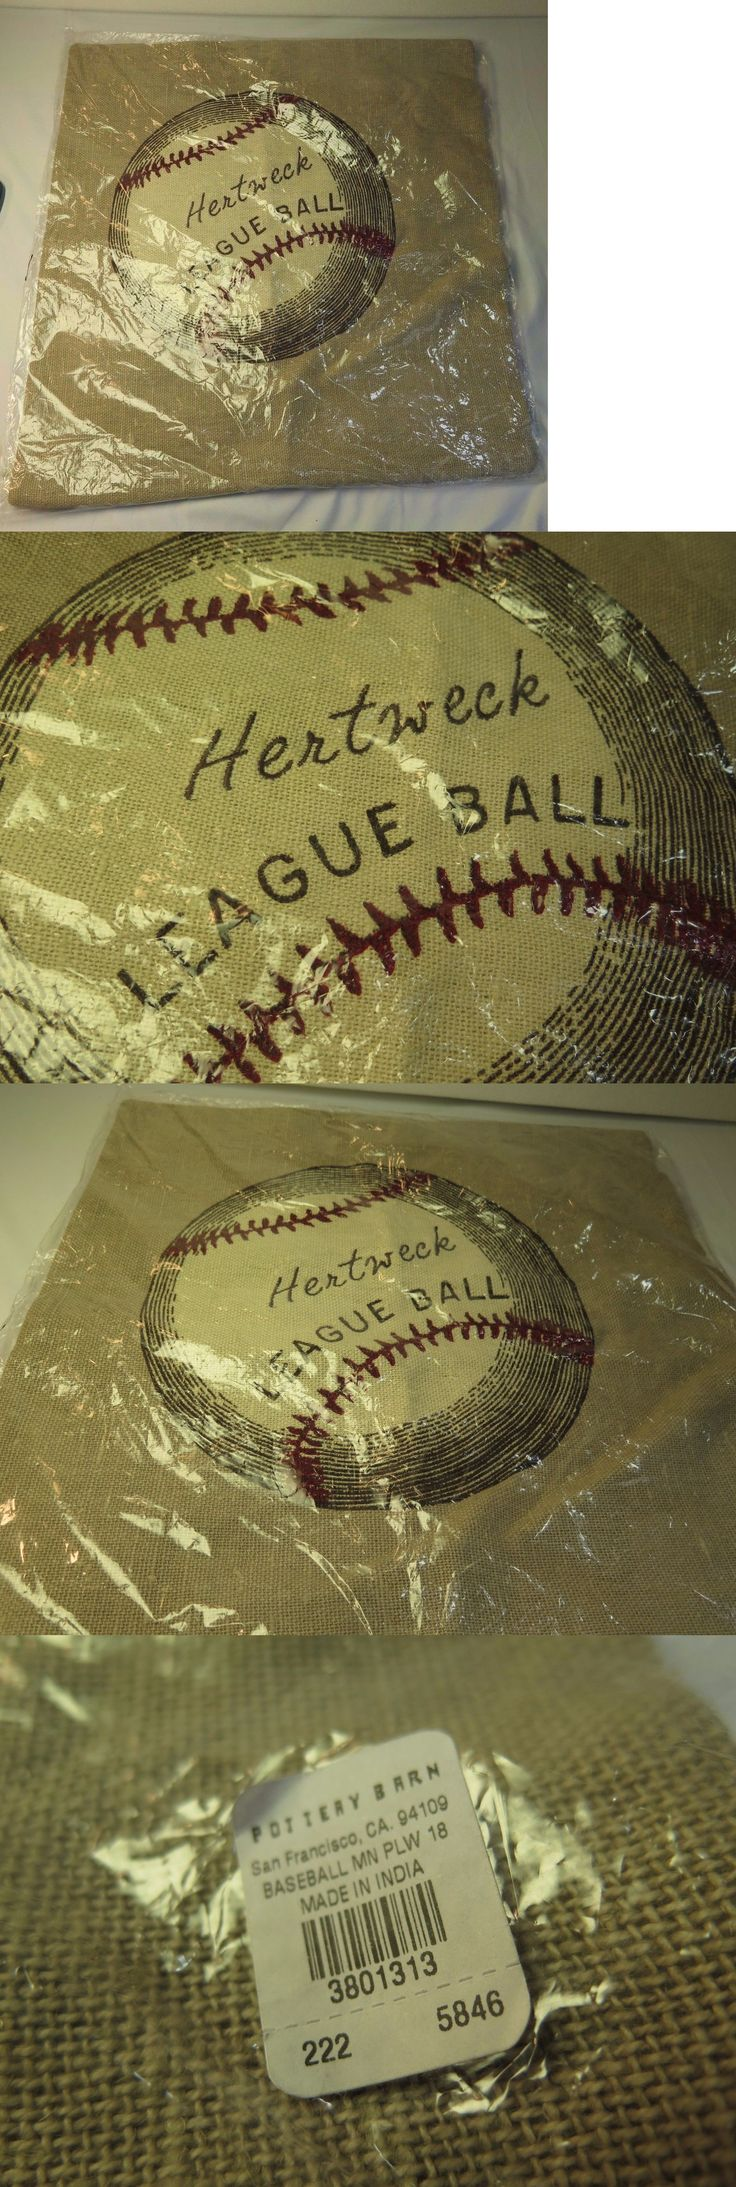 Pillows 20563: New Beautiful Embroidered Pottery Barn Pillow Cover Baseball Hertwrek 18 X 18 -> BUY IT NOW ONLY: $33.94 on eBay!